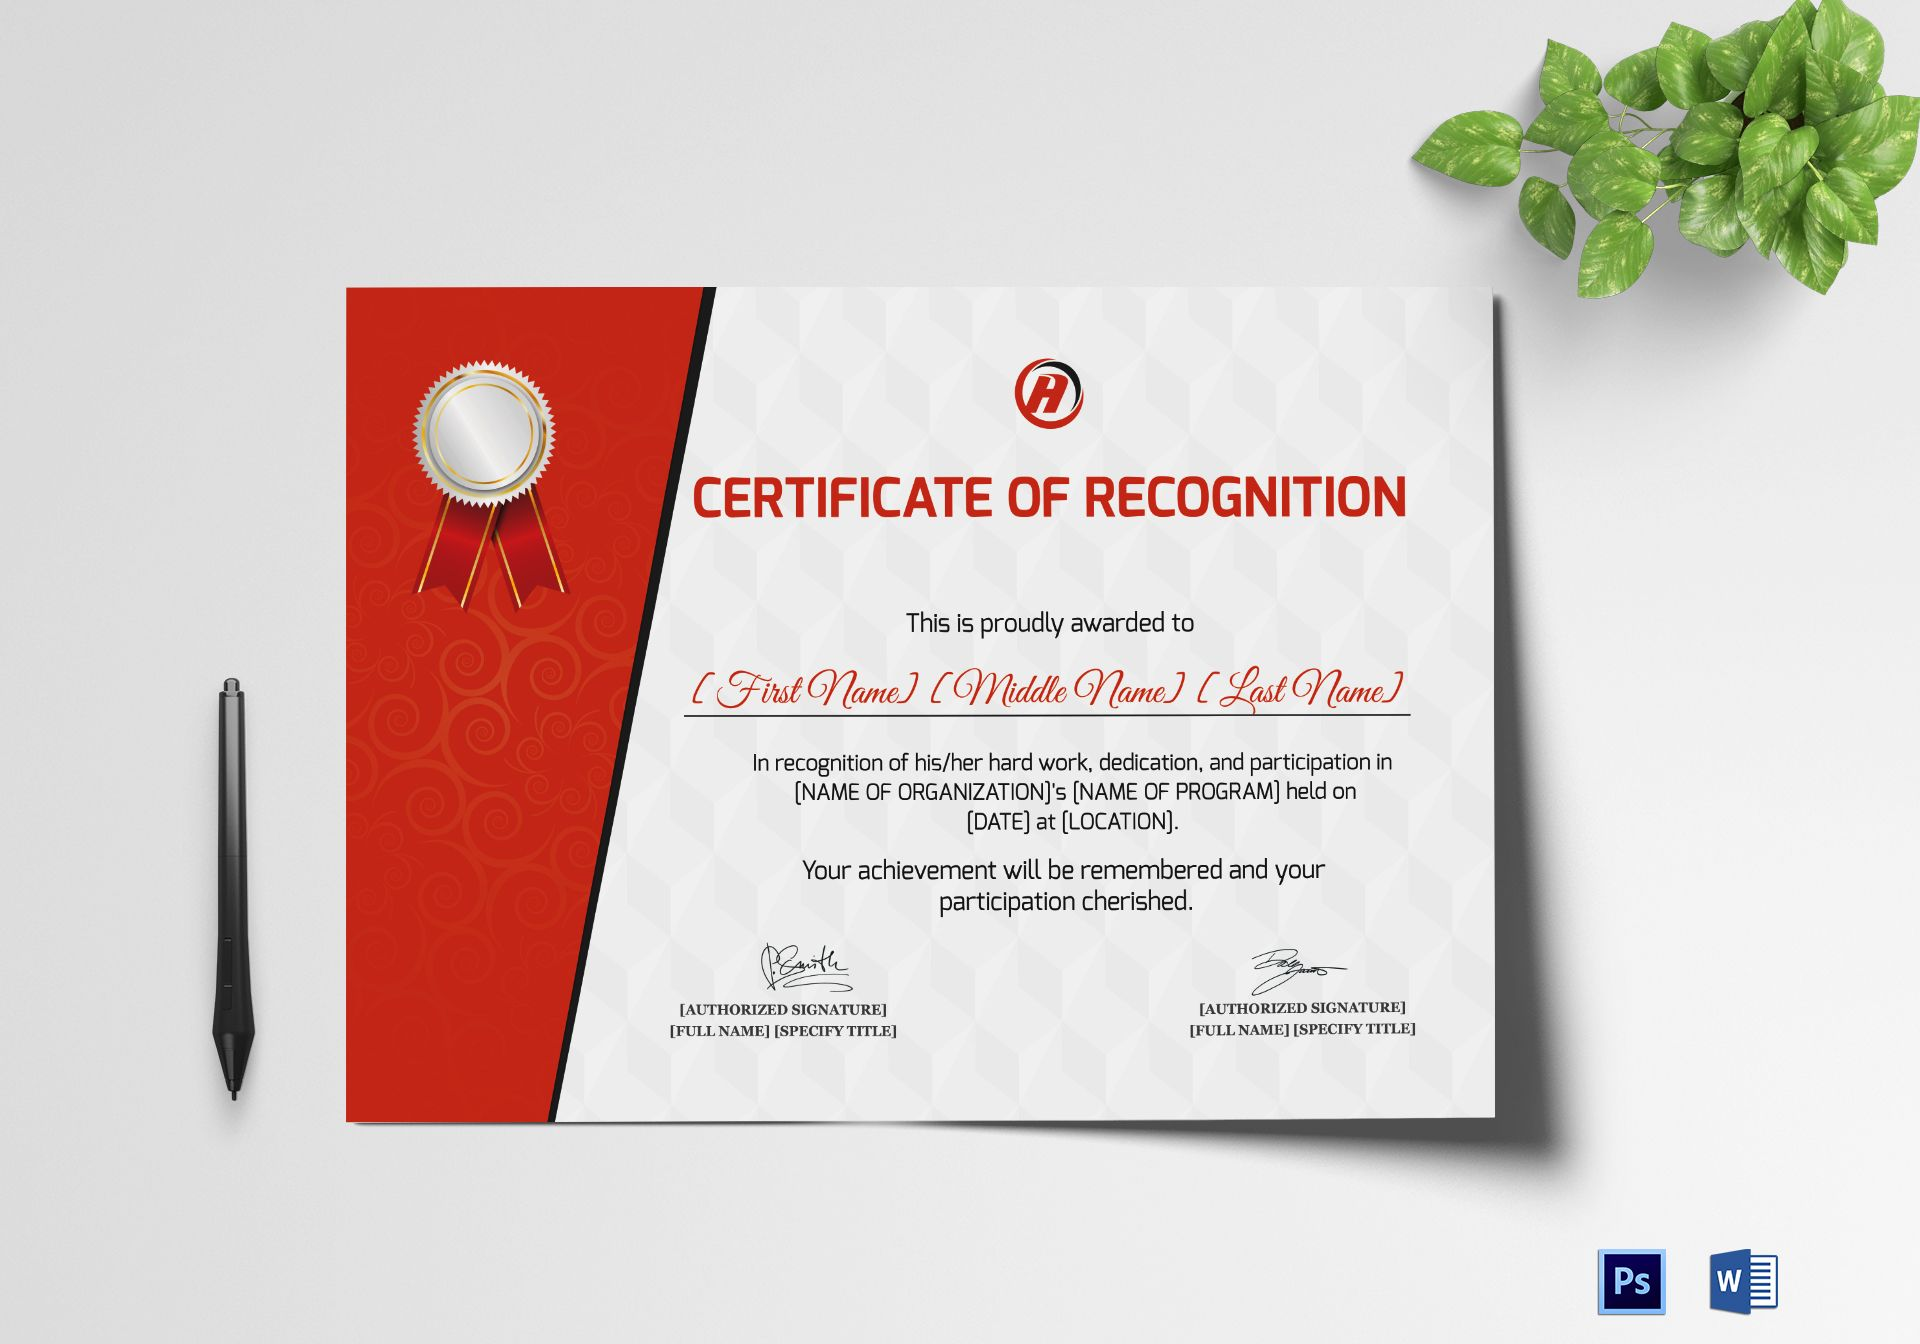 Certificate Of Recognition For Dedication Template In Psd Word